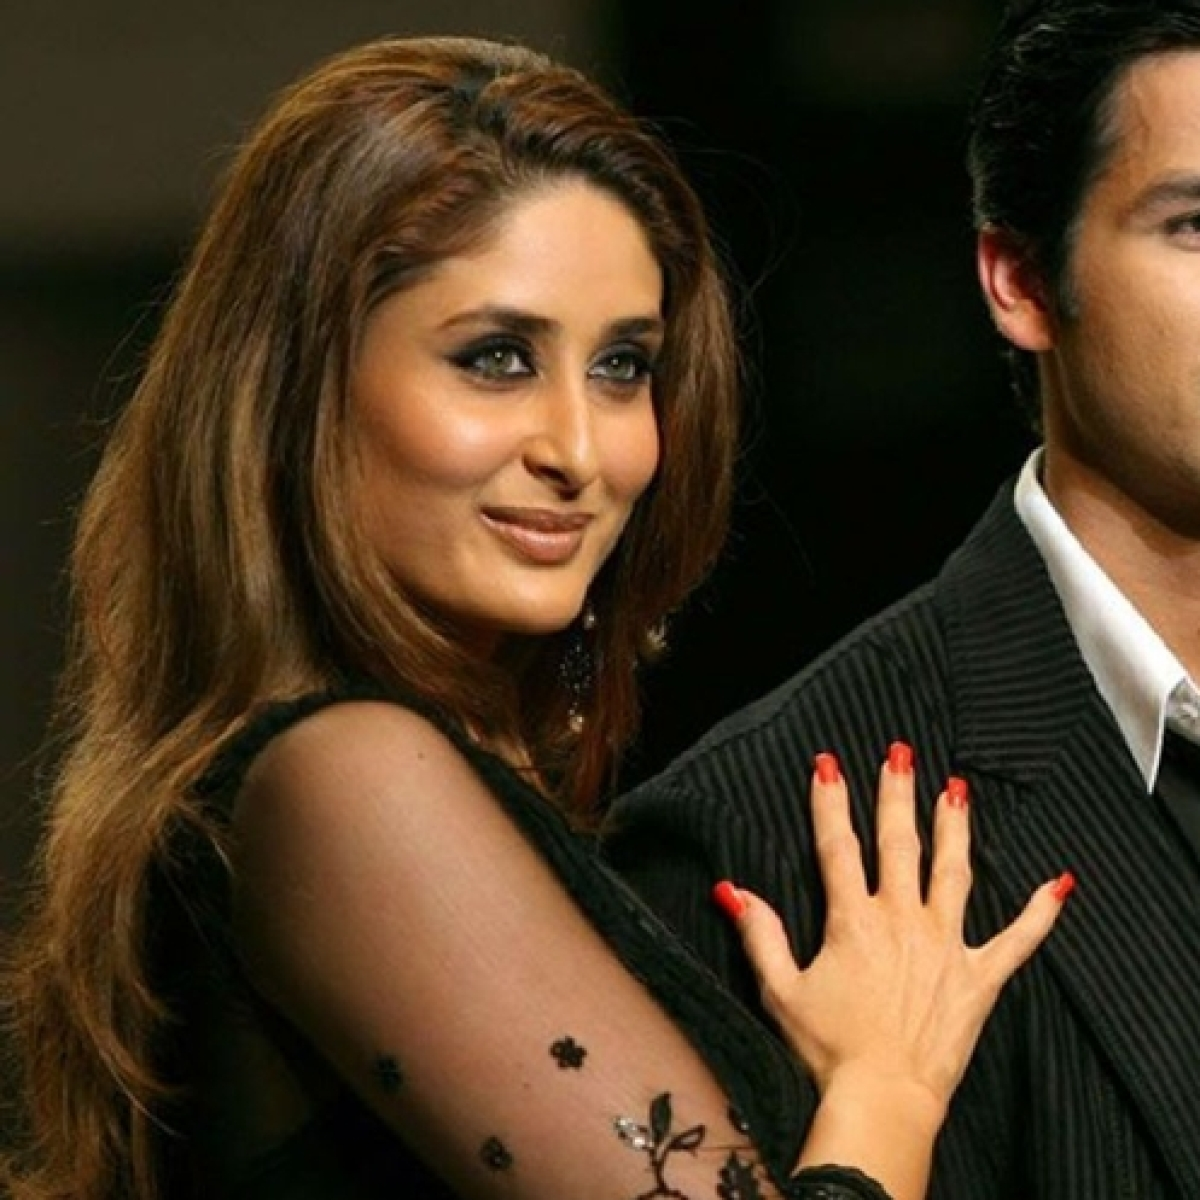 'It all felt like a game of chess': Kareena opens up on breakup with Shahid after 14 years